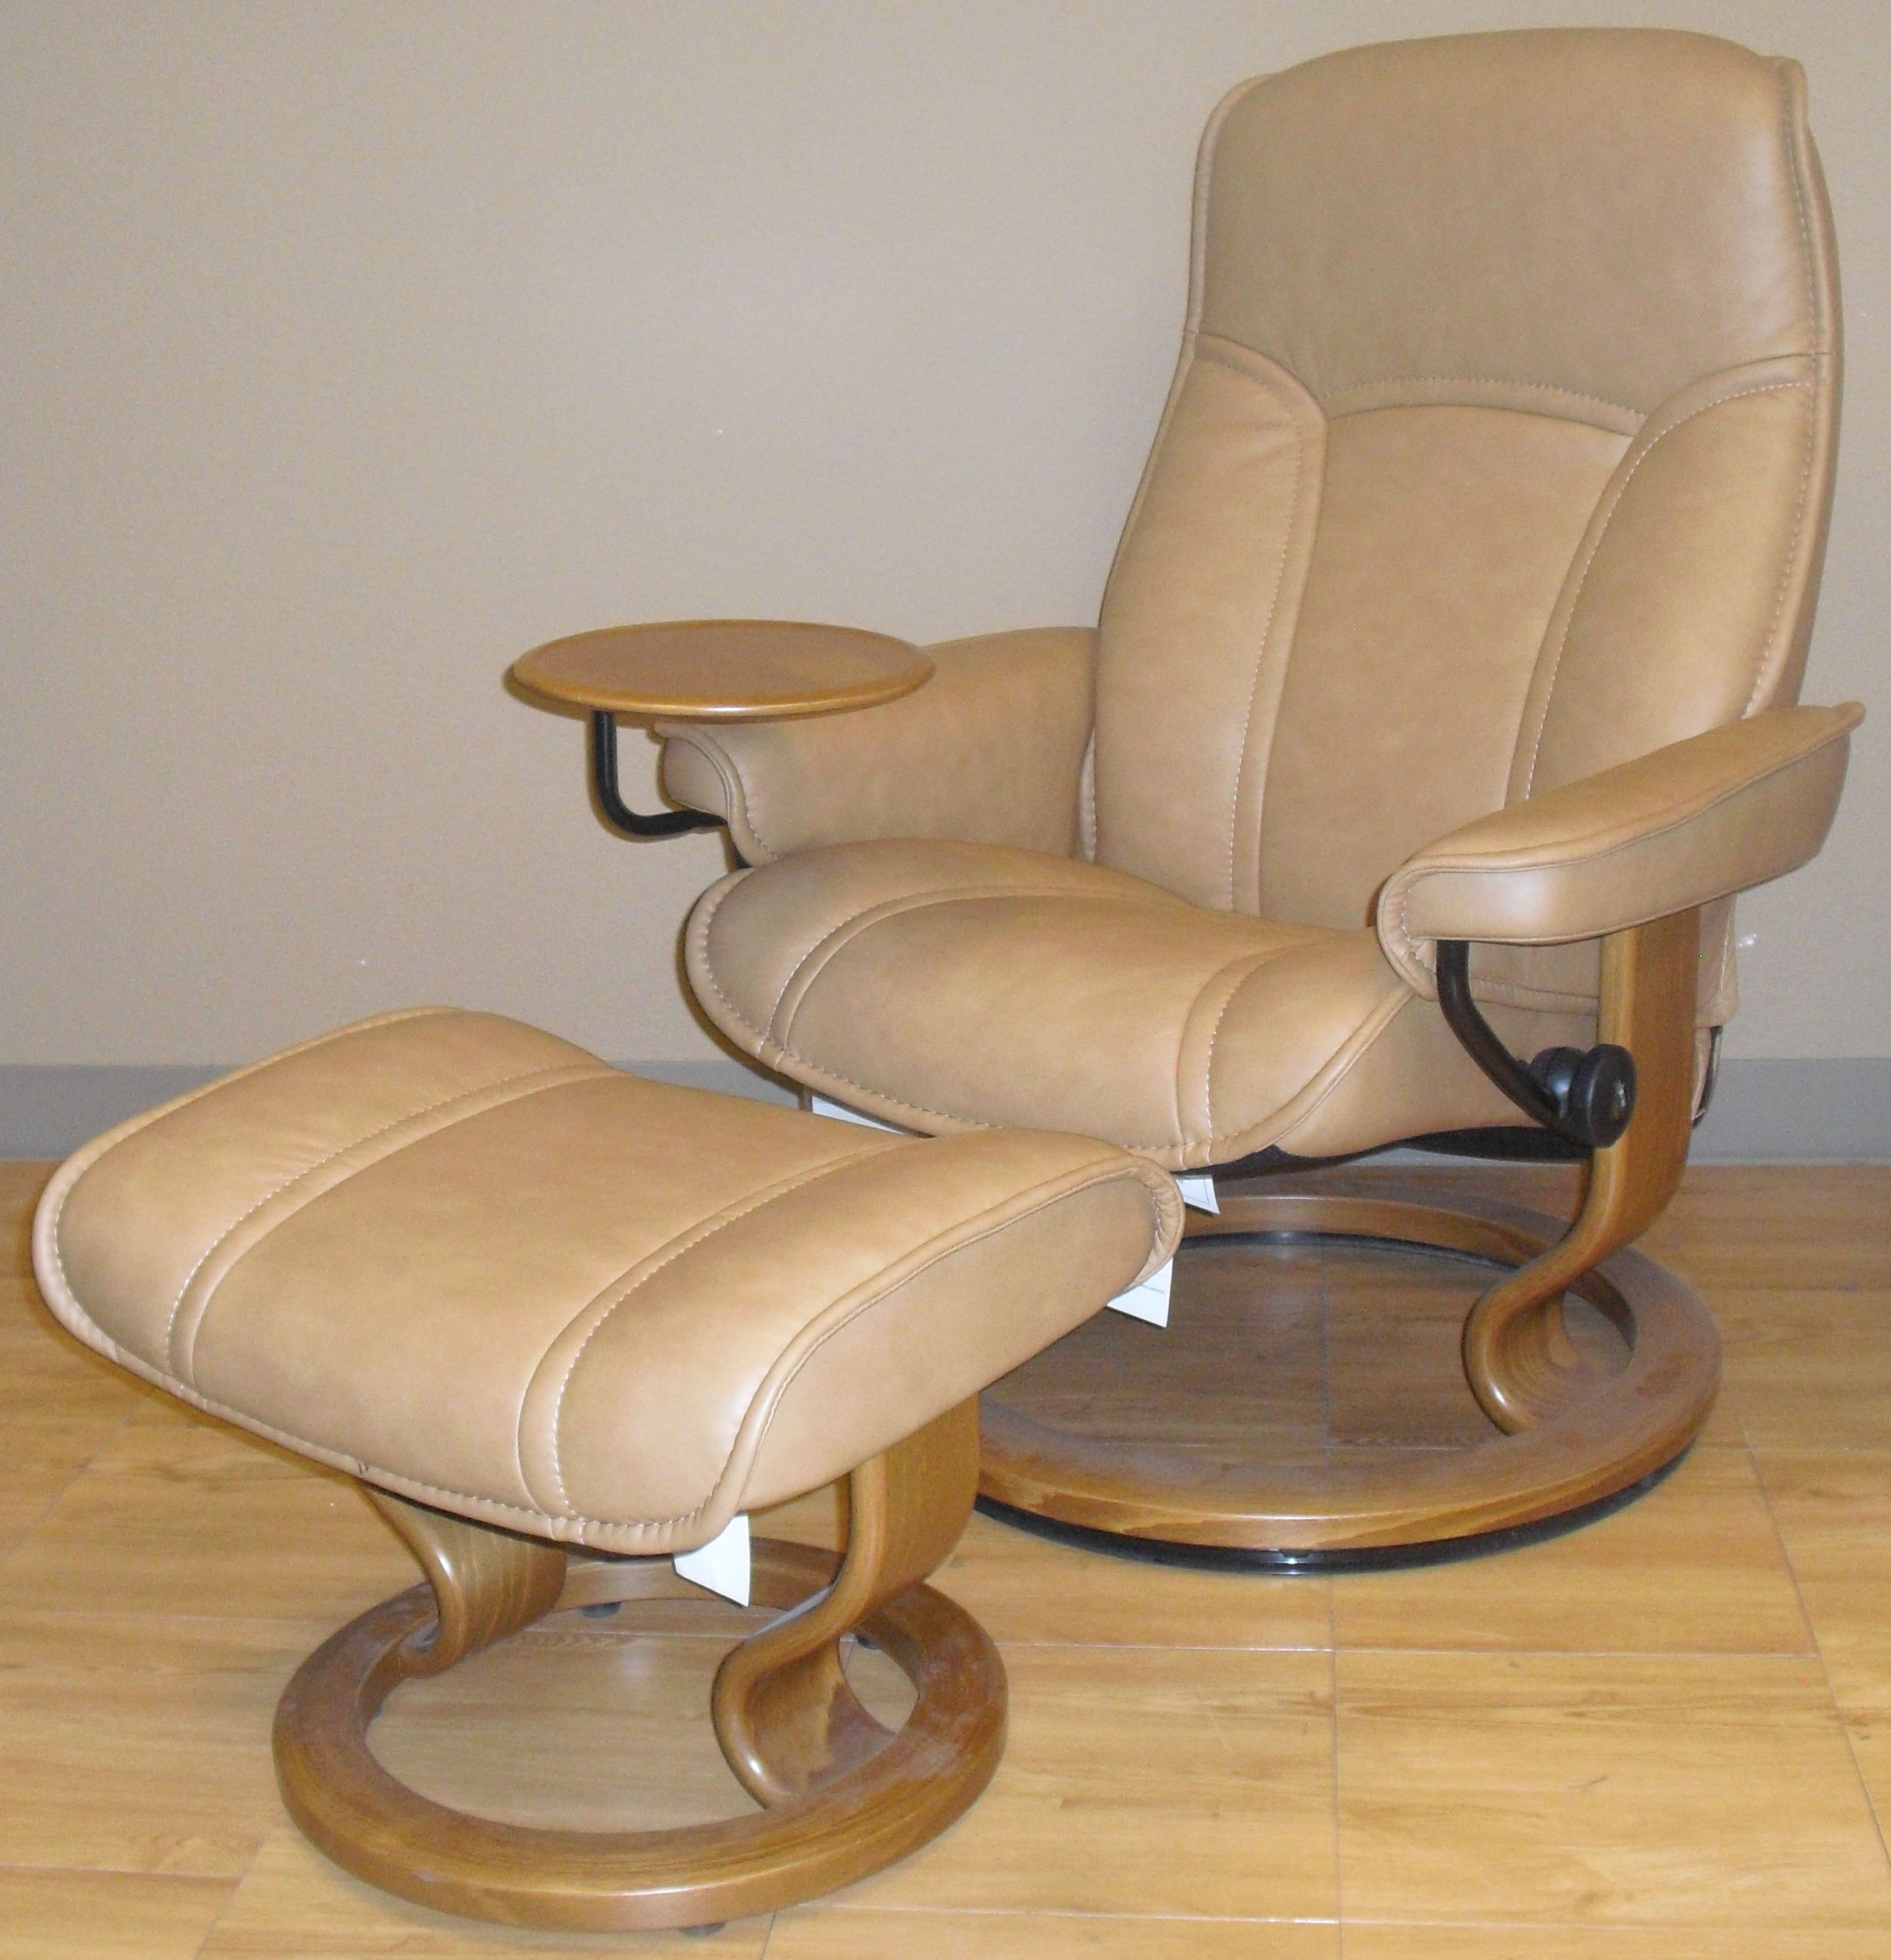 recliners amy by lafer recliner cressina base chair modern